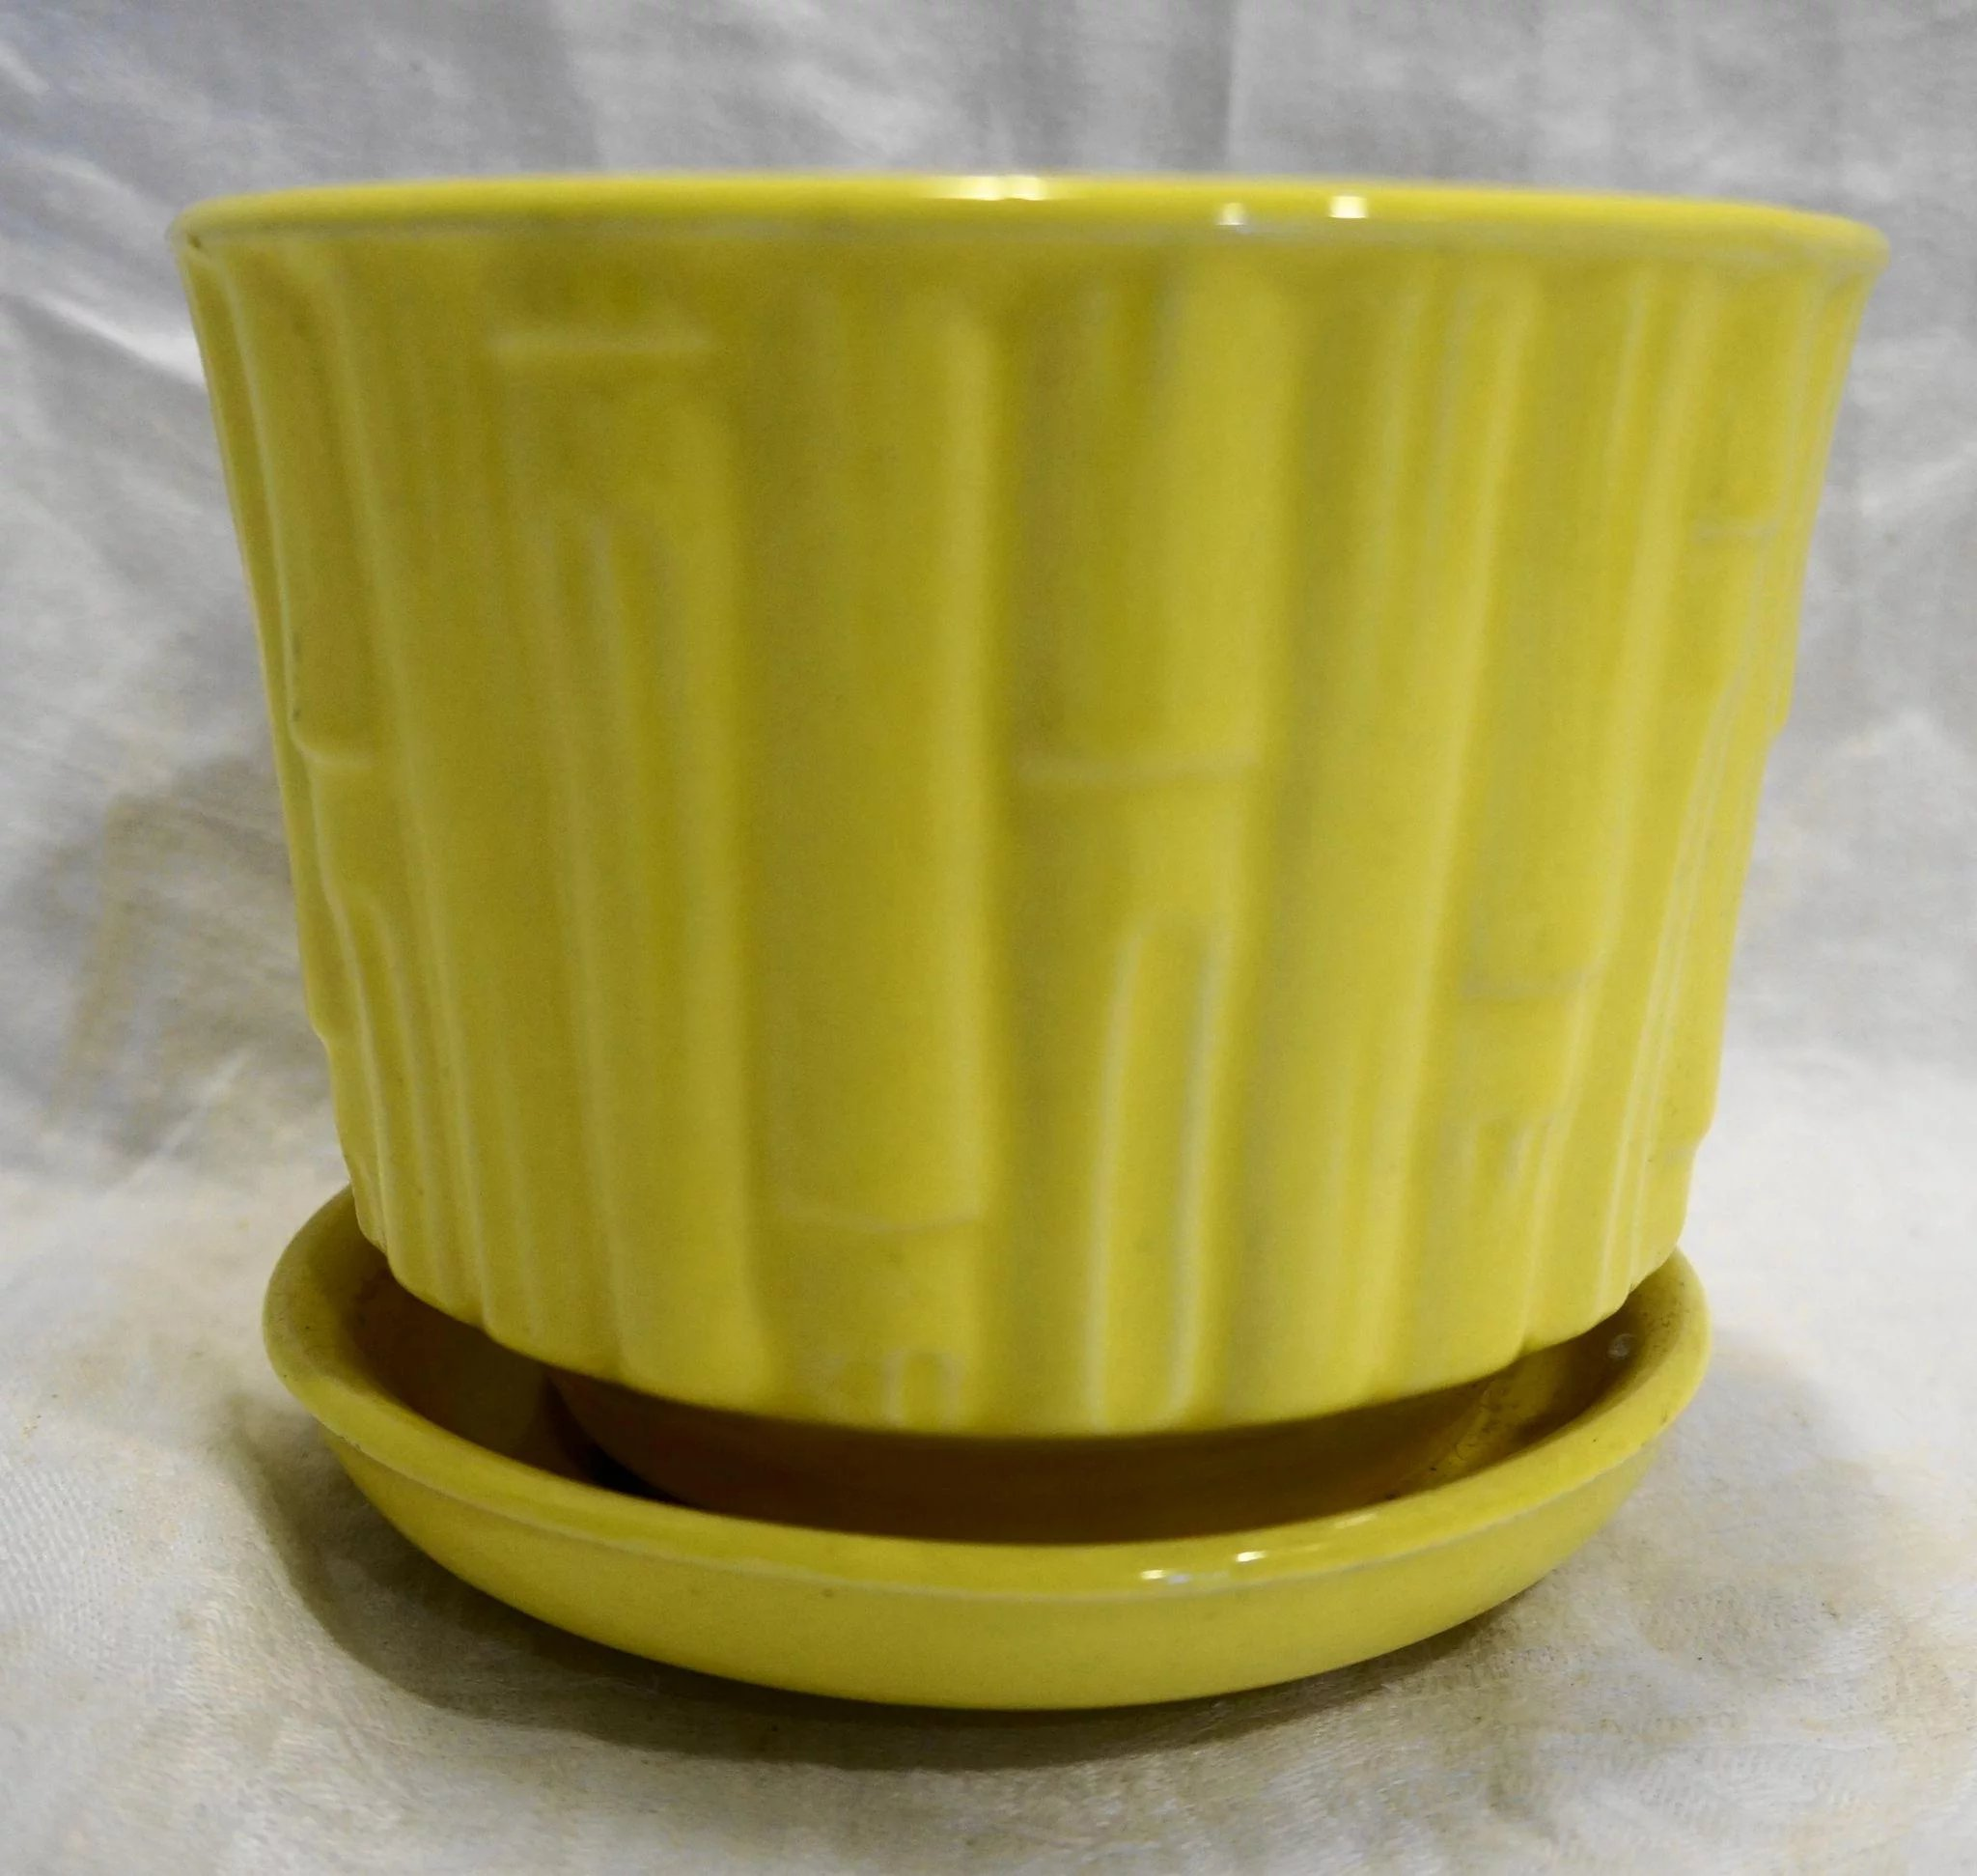 Mccoy bamboo bright yellow flower pot planter with saucer 0373 click to expand mightylinksfo